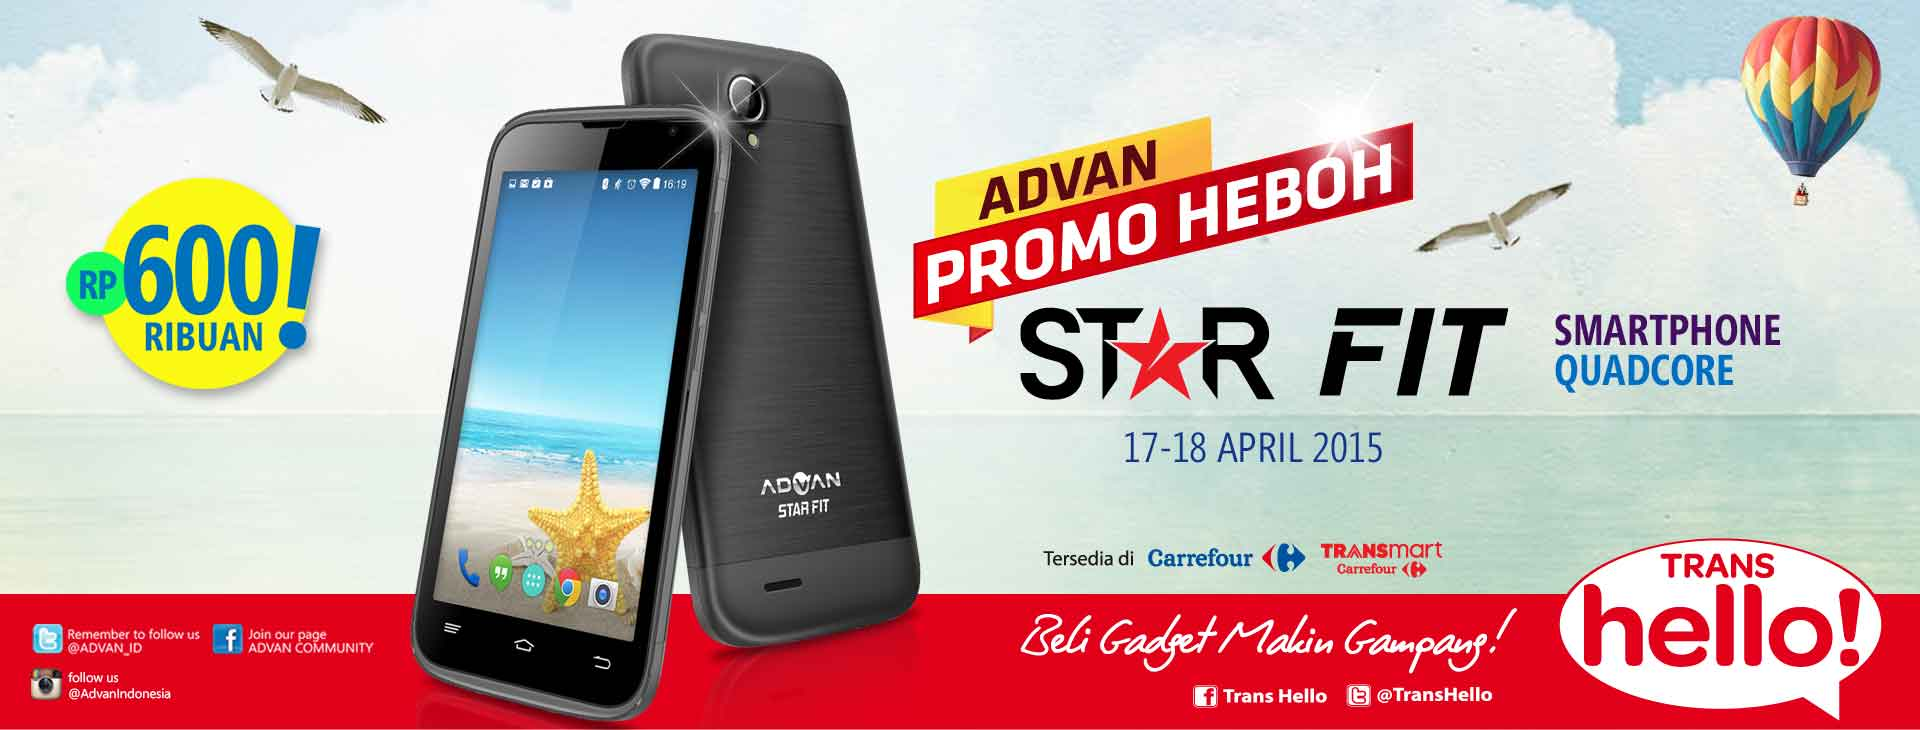 Advan Star Fit S45C